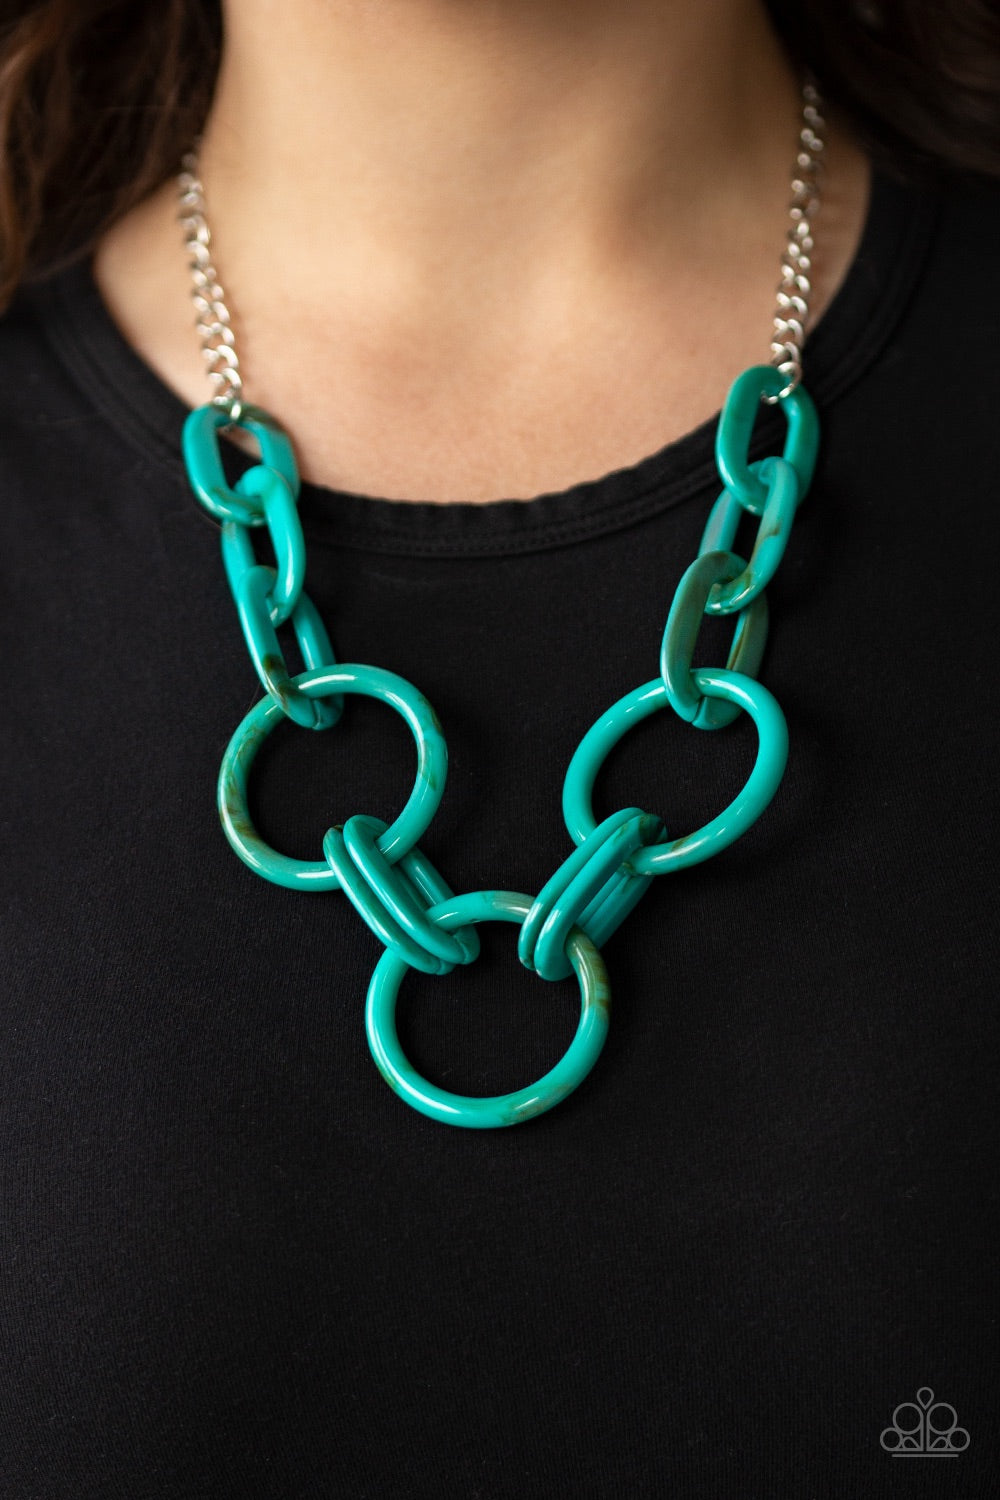 Paparazzi Jewelry Necklace Turn Up The Heat - Blue